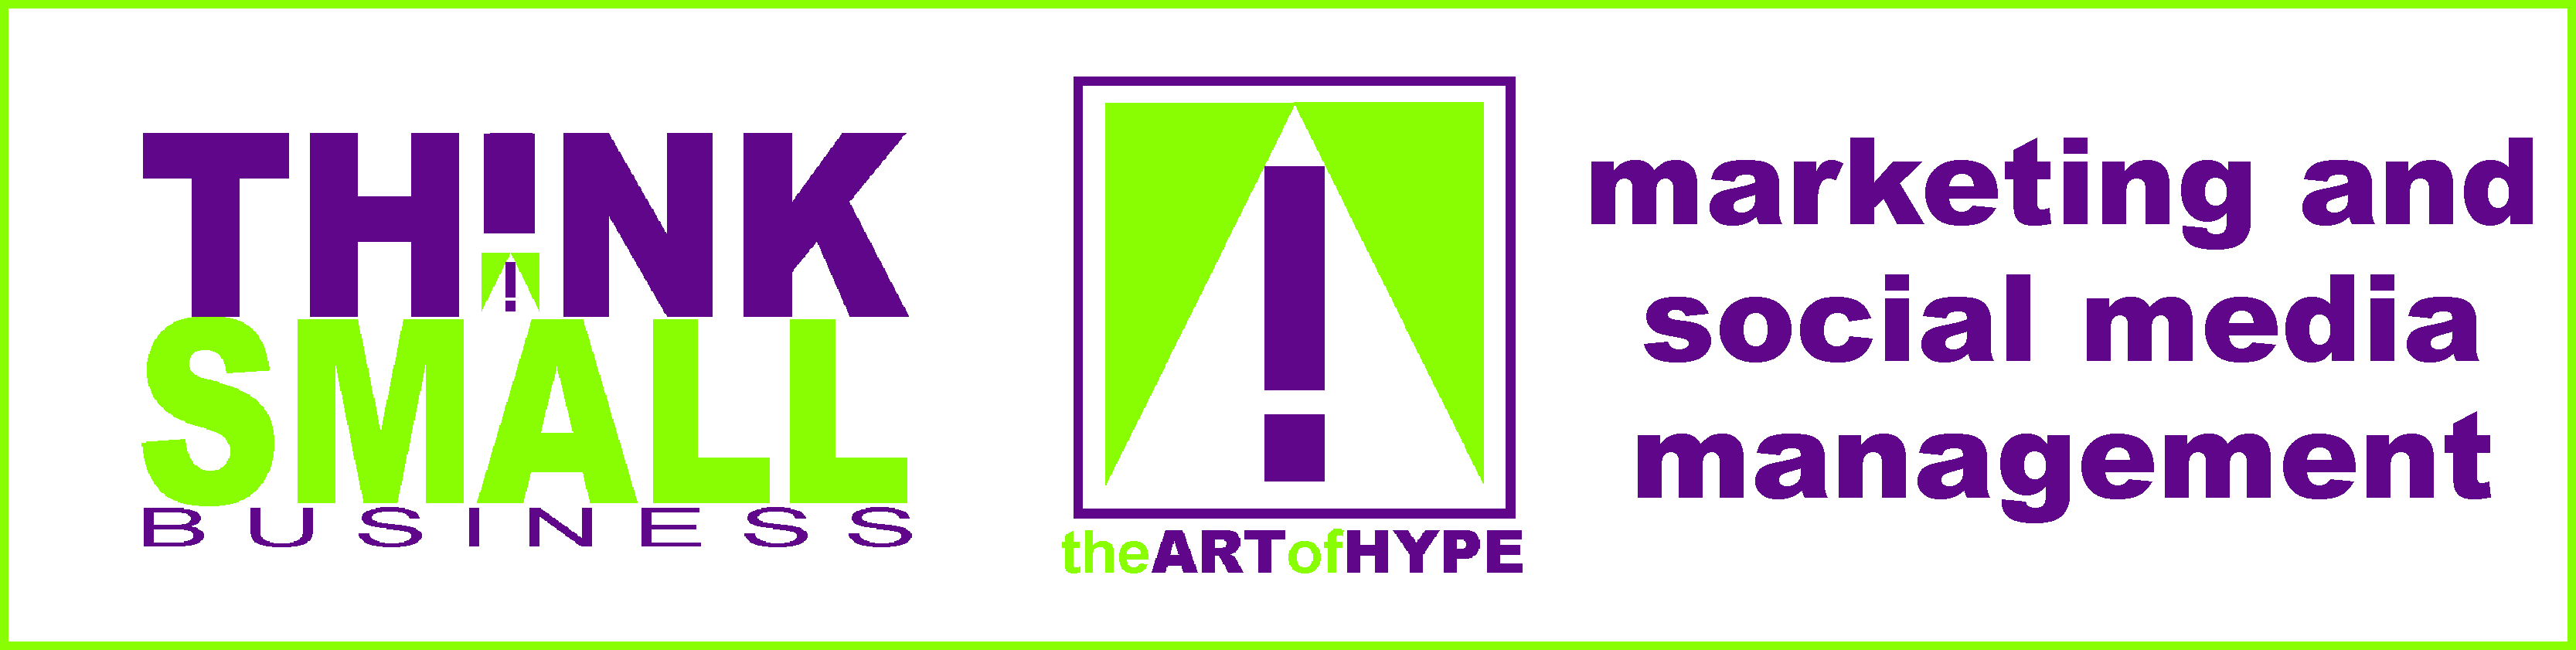 the art of hype small business marketing banner